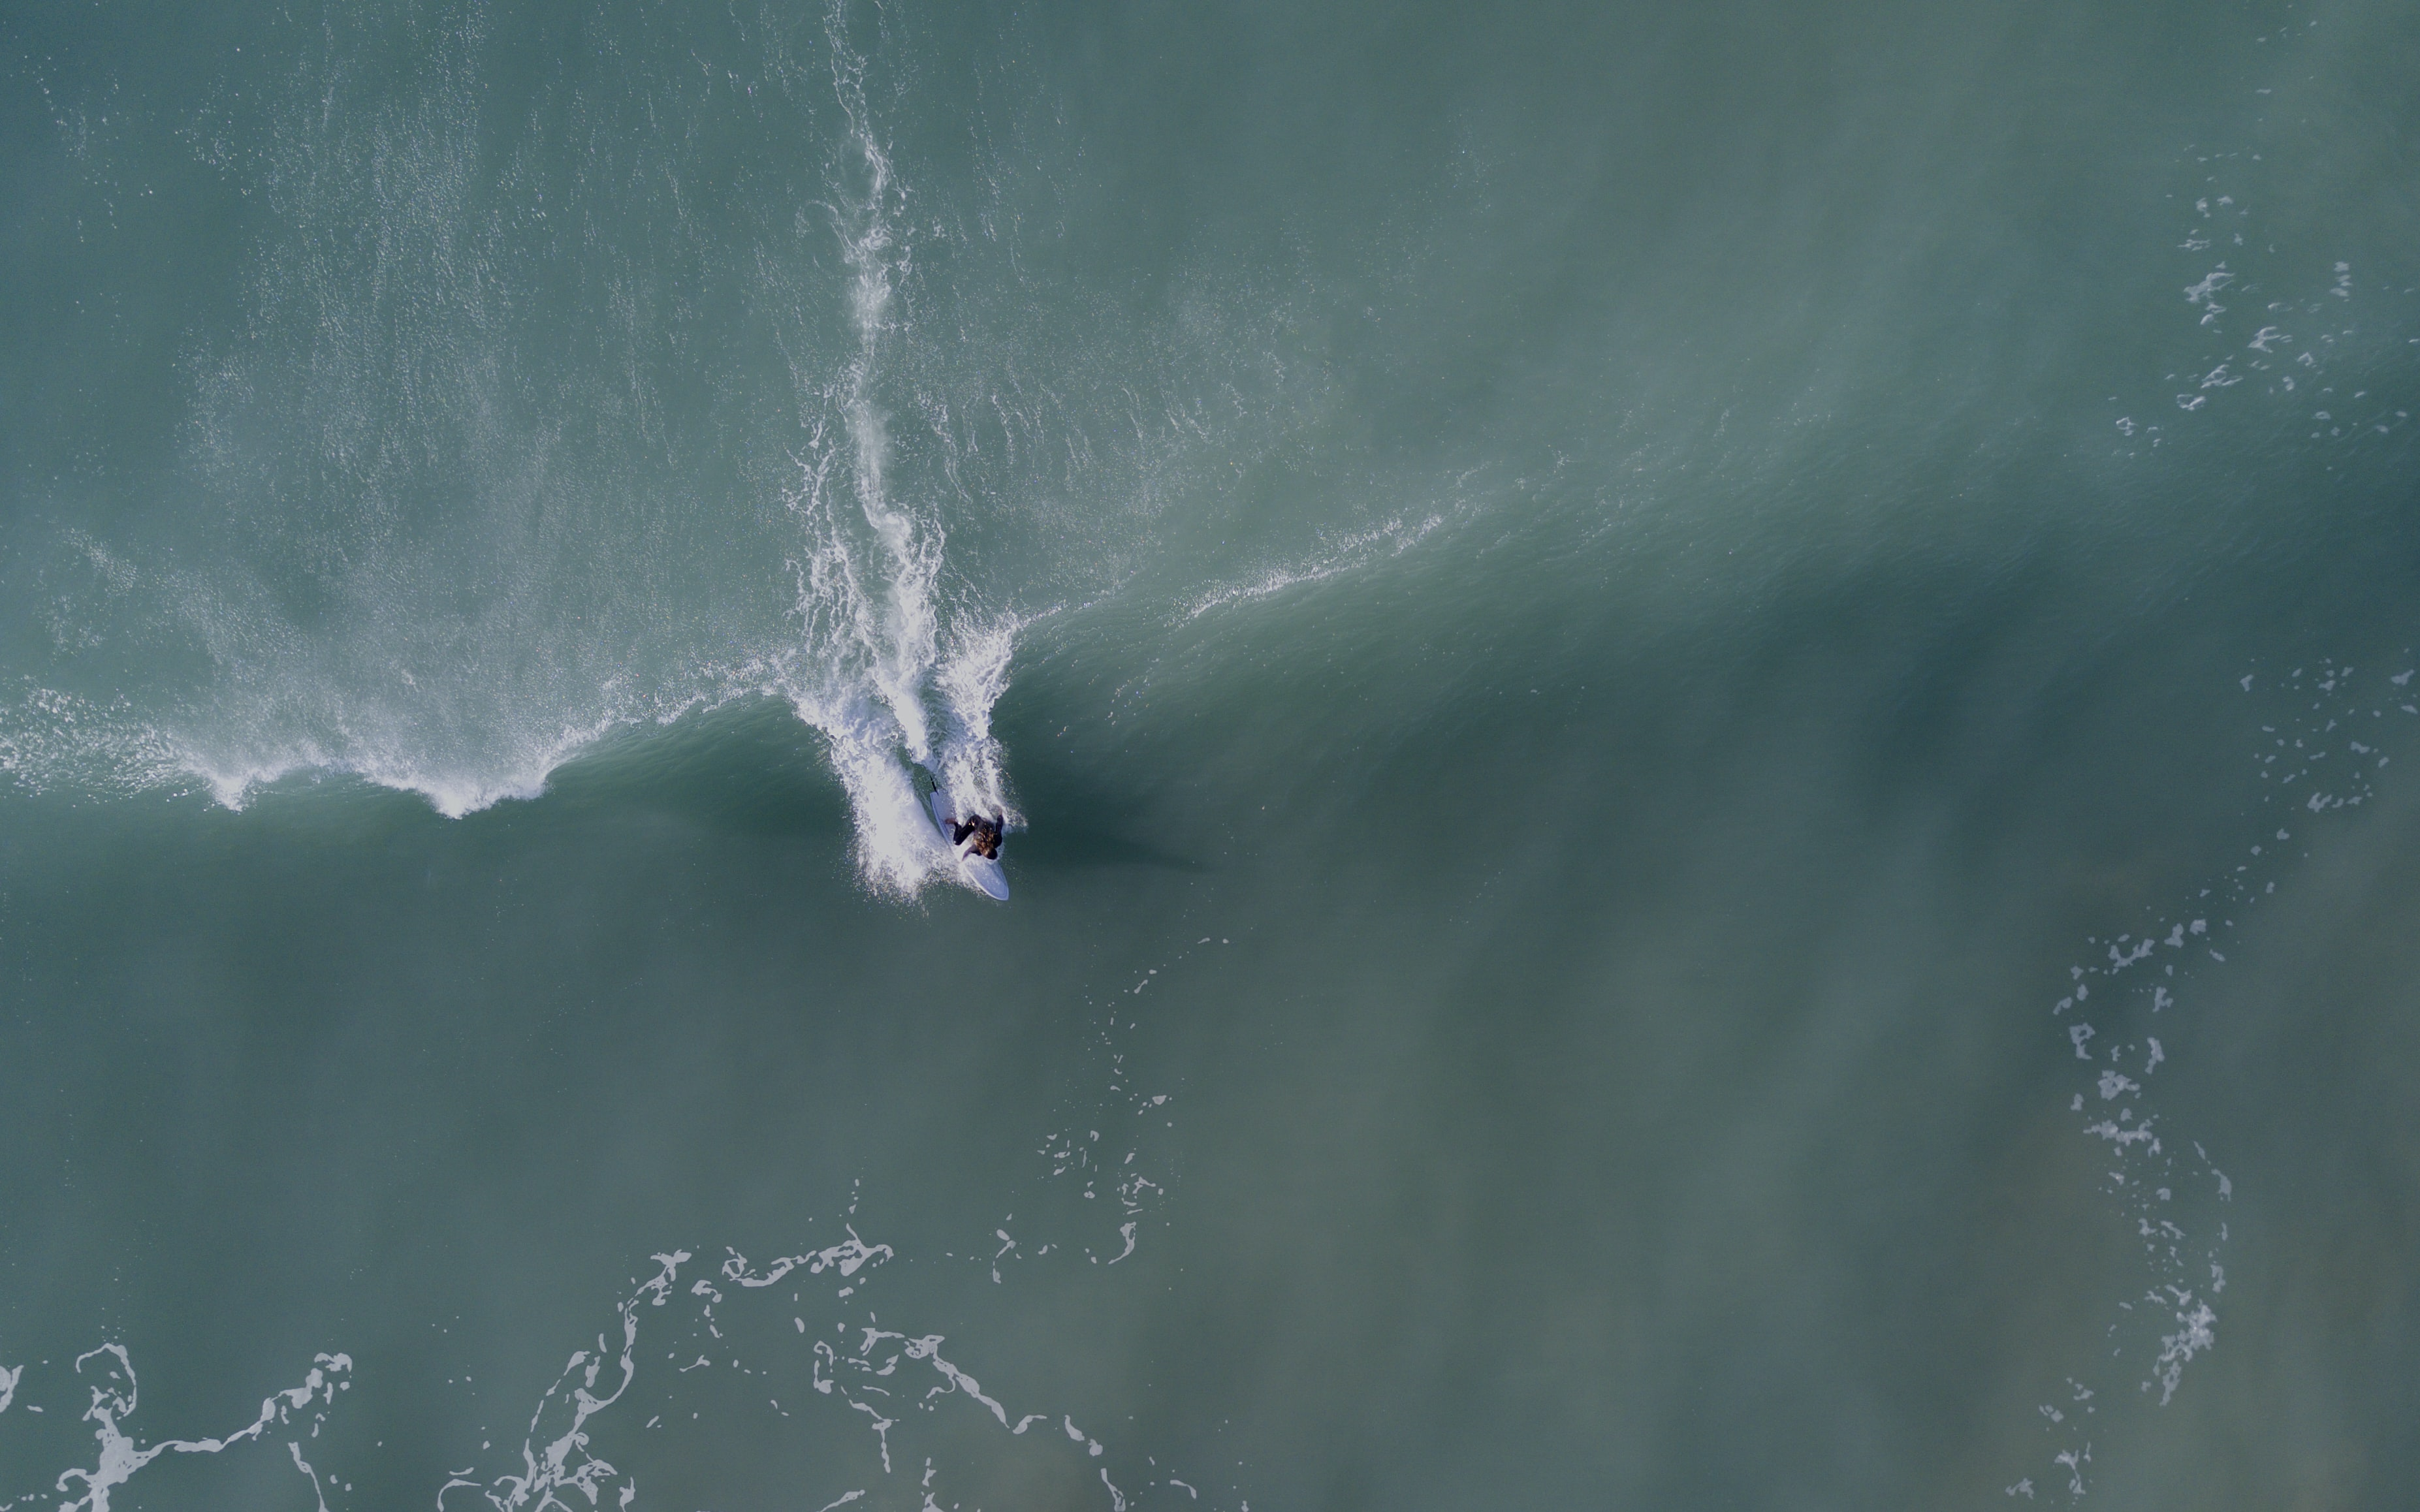 A drone shot of a surfer riding a wave in Gisborne, New Zealand